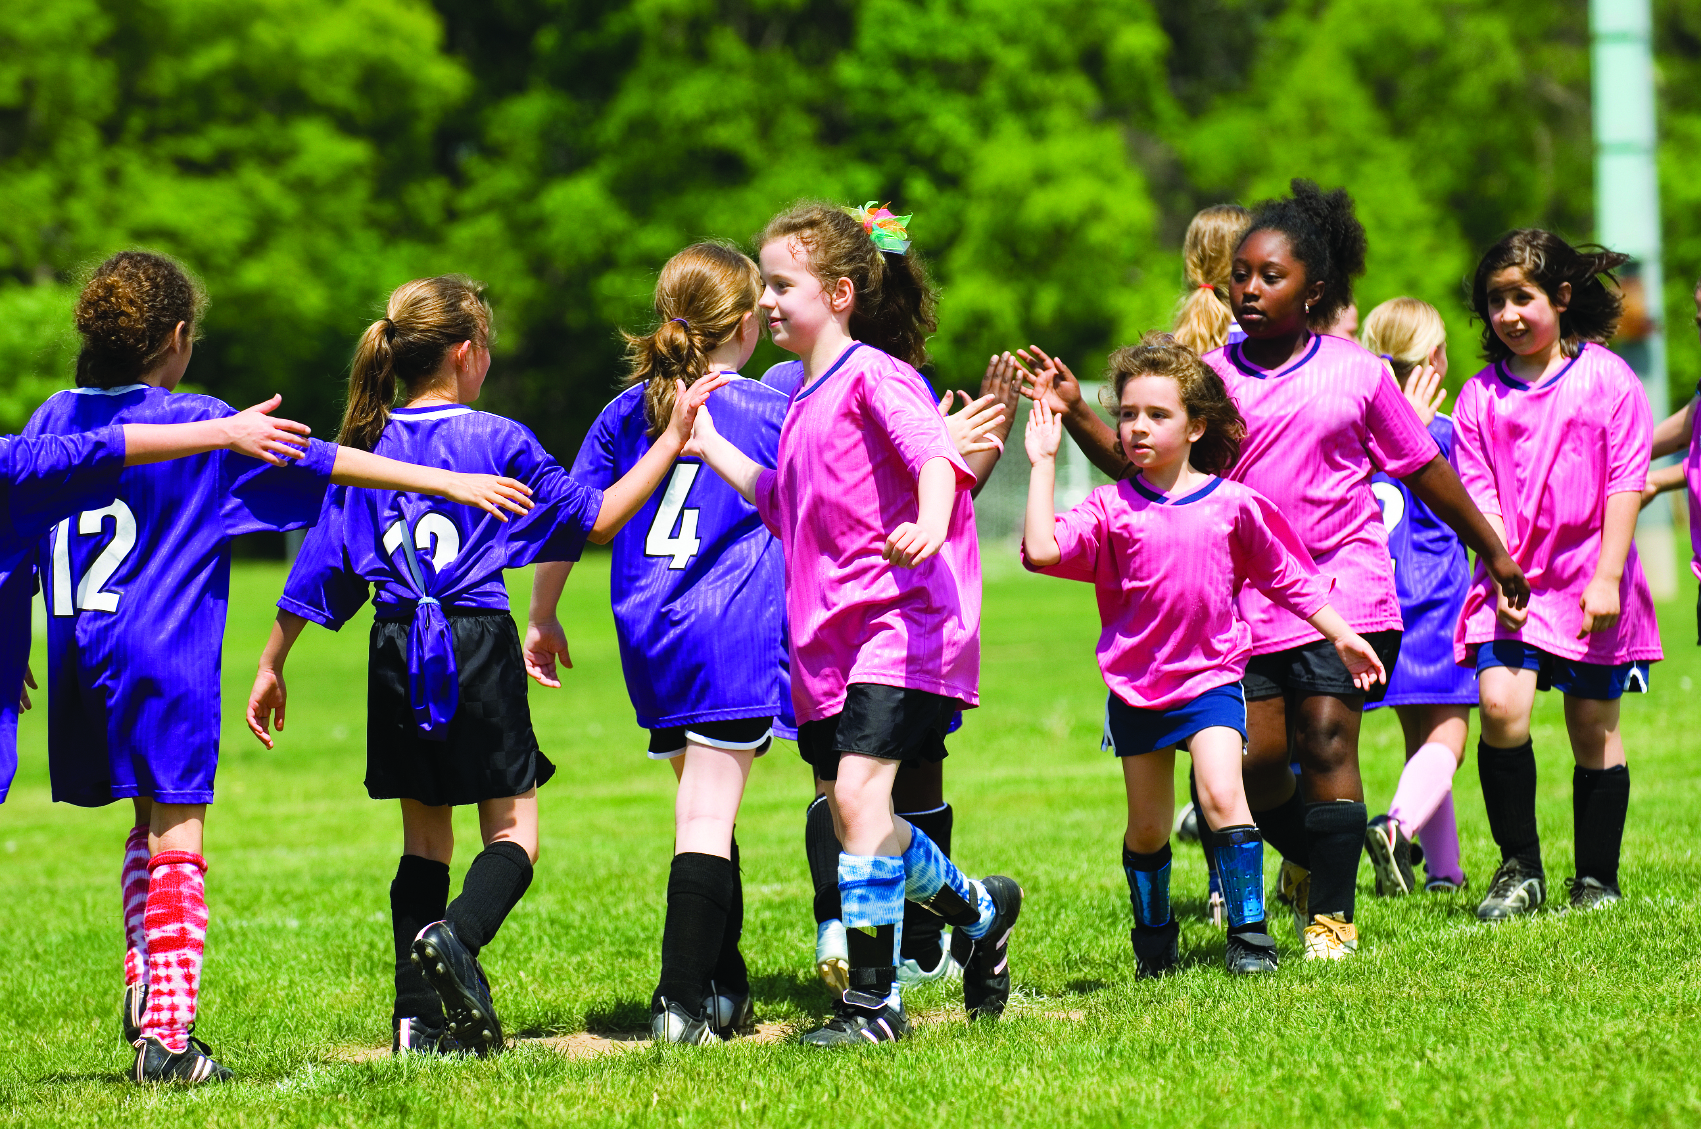 Benefits of playing soccer for young kids.